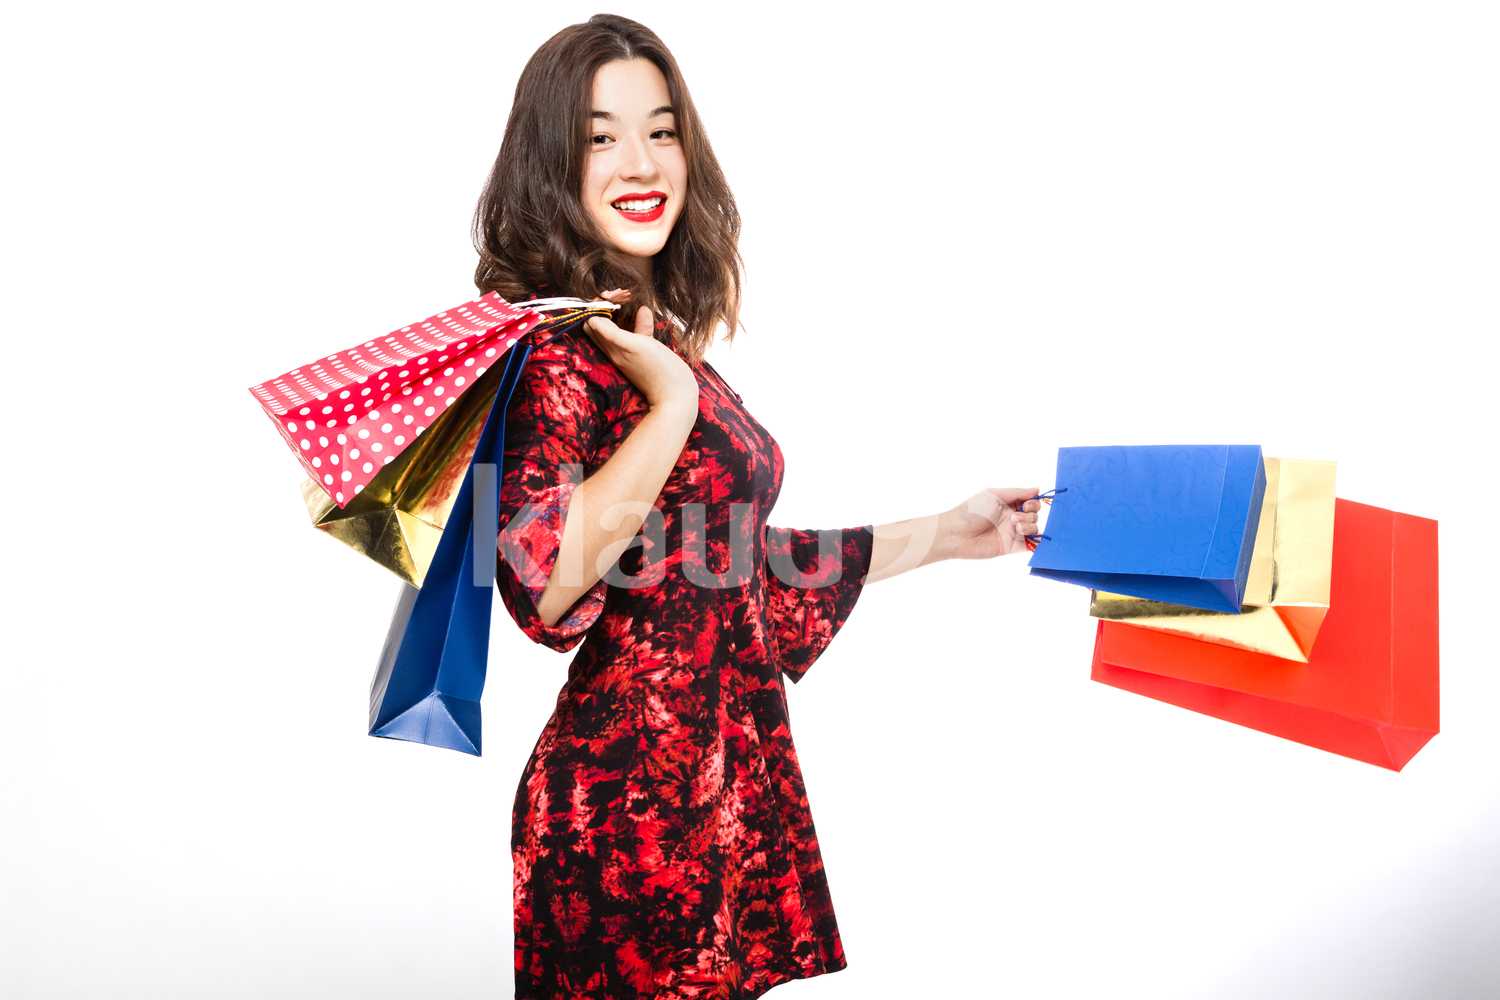 Pretty Woman Happily Smiling with her Shopping Bags